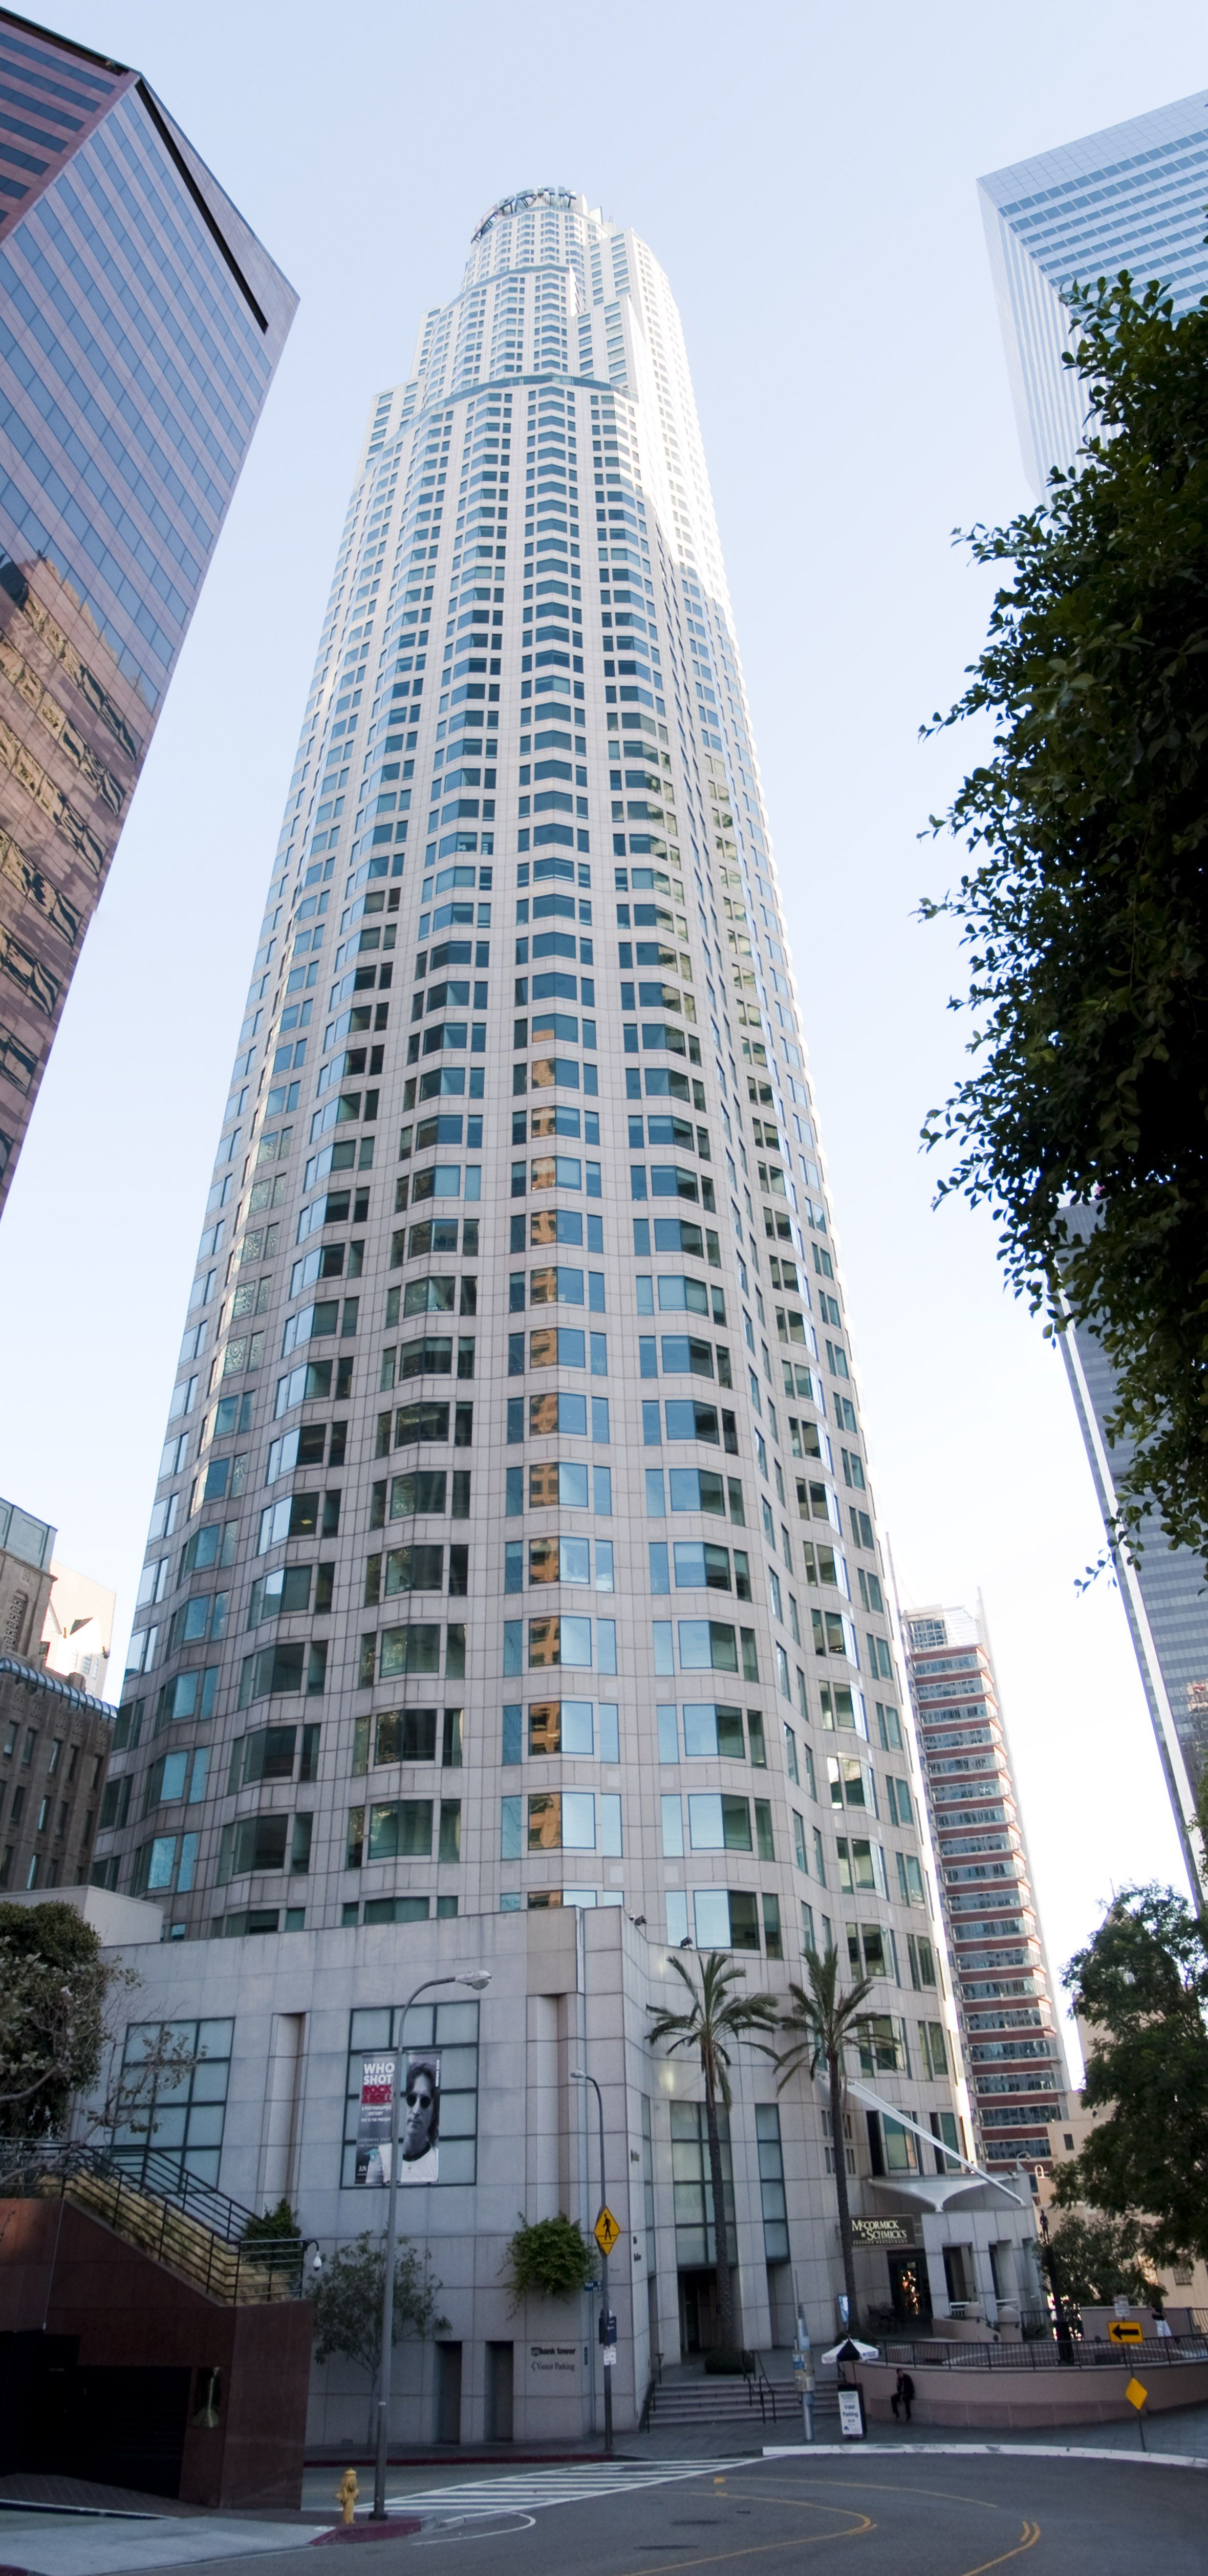 U S Bank Tower Los Angeles California Usa It Is Located At 623 W 5th Street Los Angeles It Has 73 Floors And Has A Height Us Bank Tower Tower Building